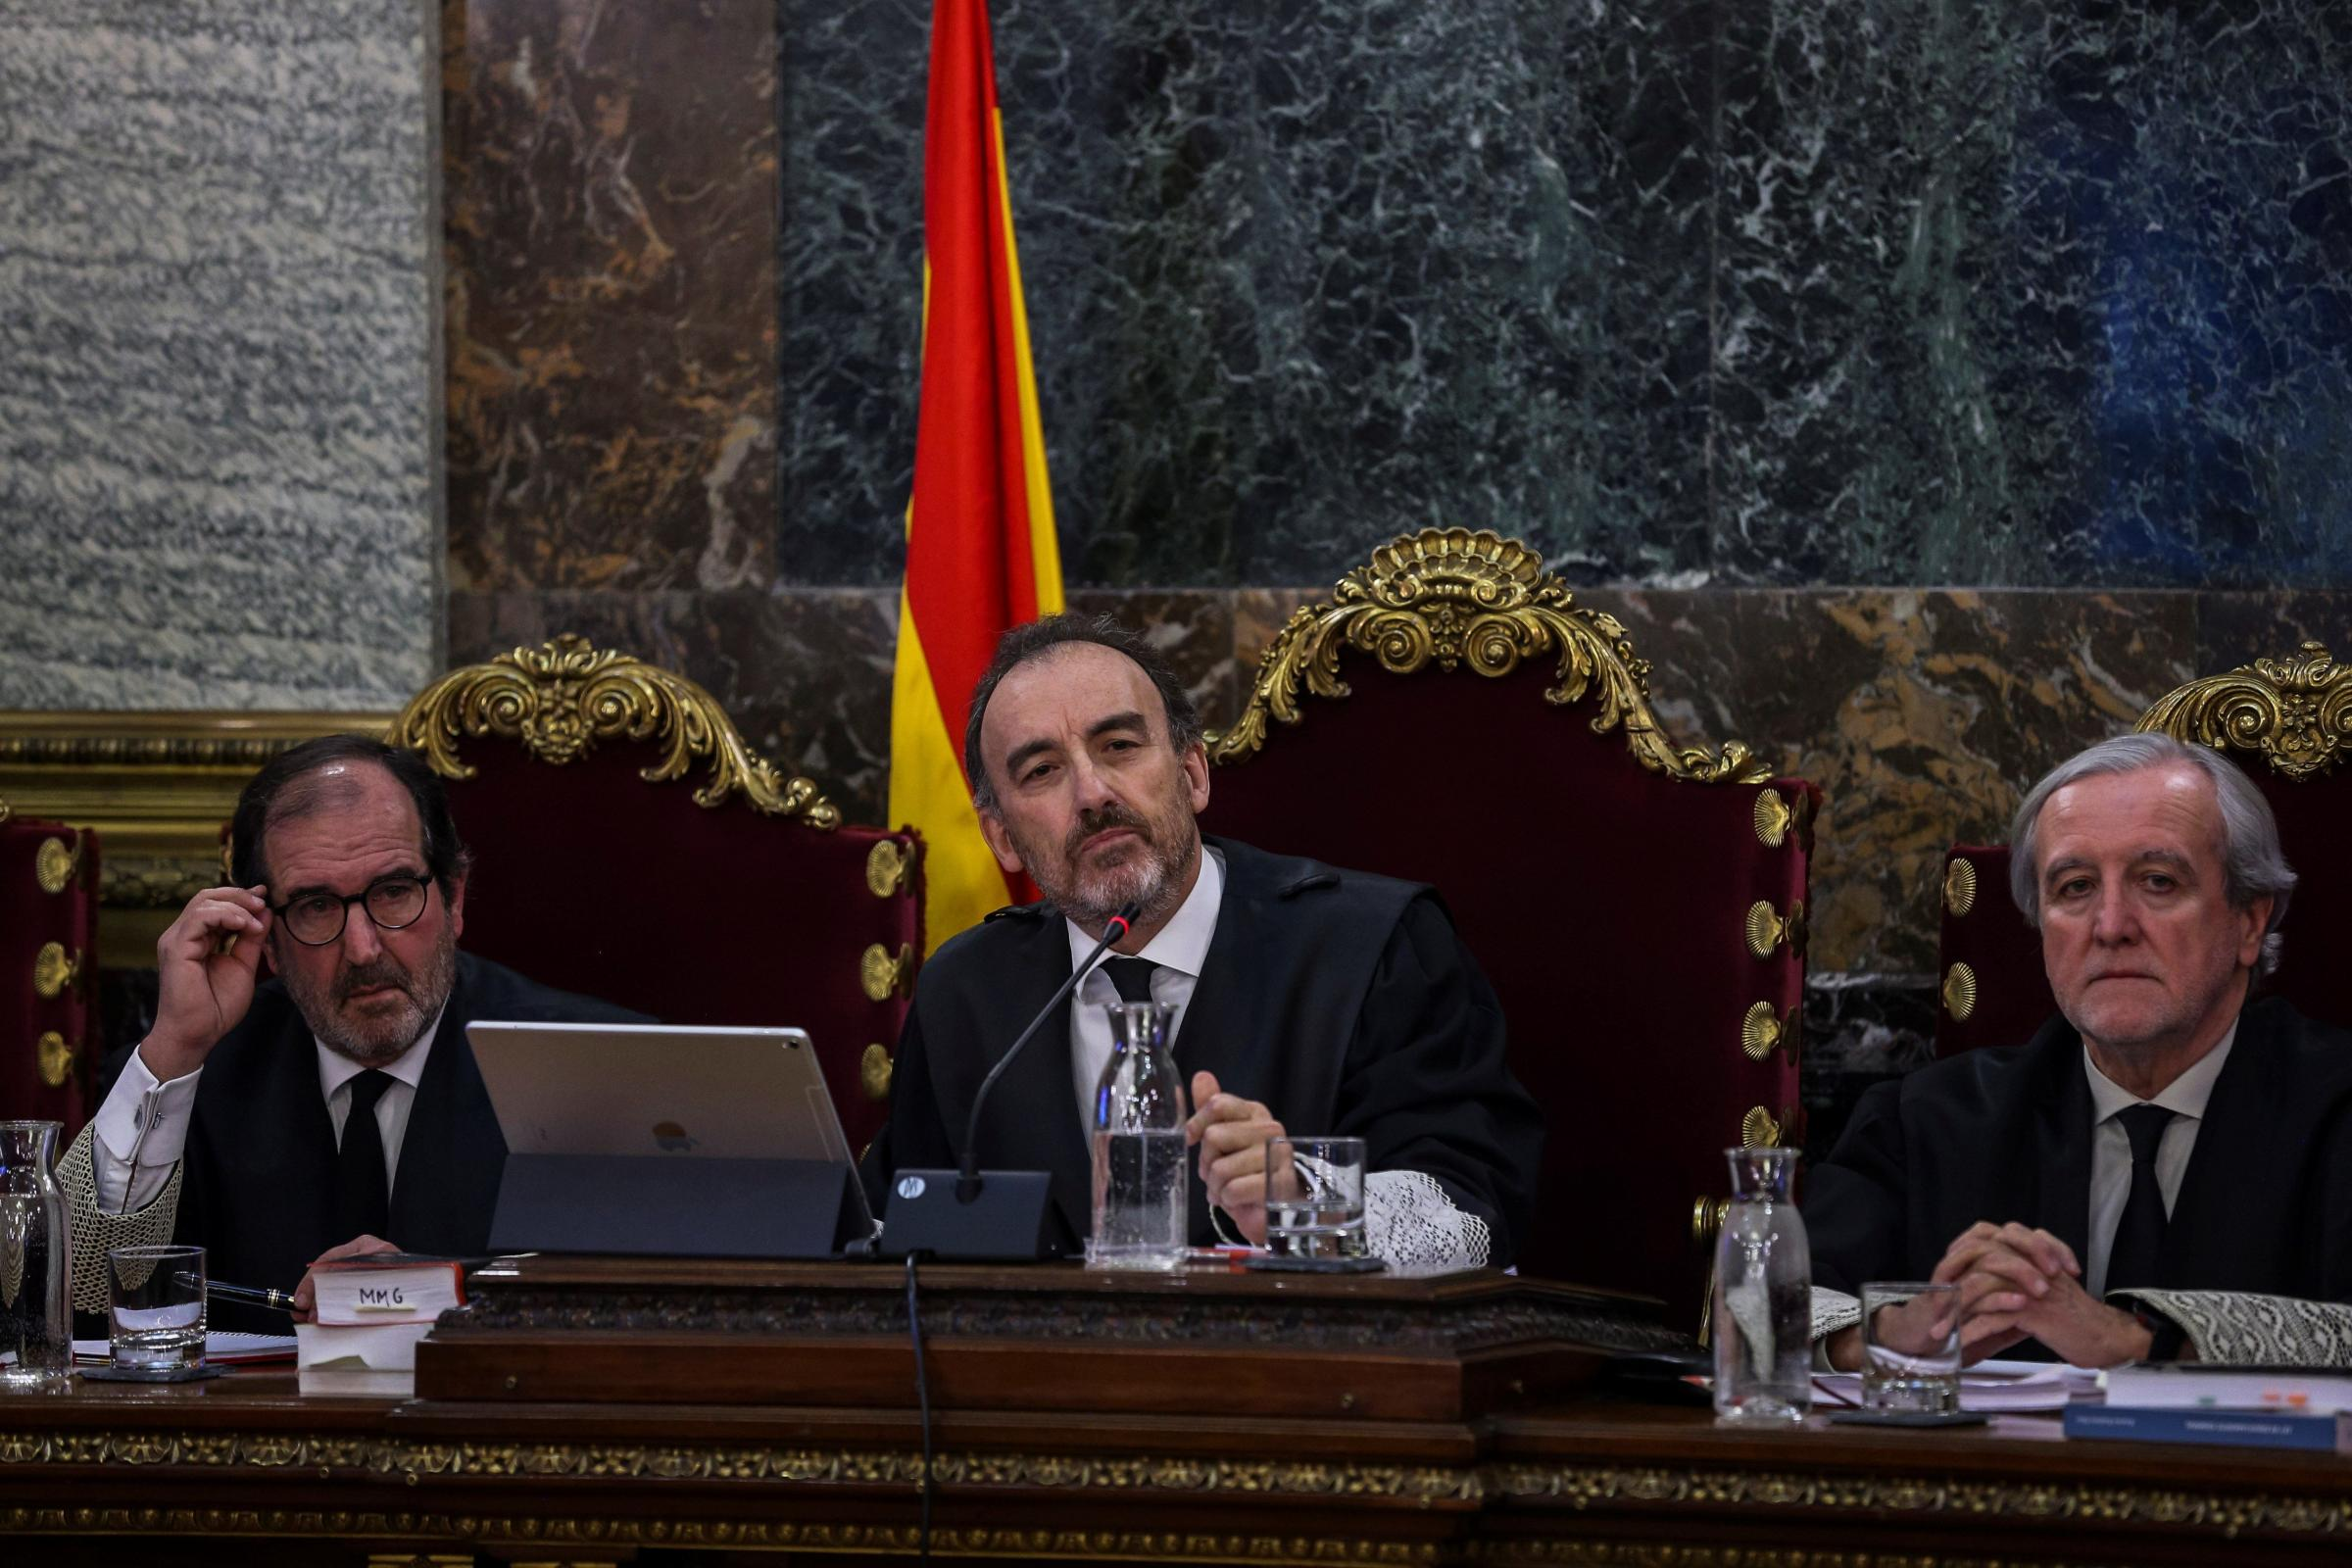 Fears have been raised over the handling of the trial by court president Manuel Marchena